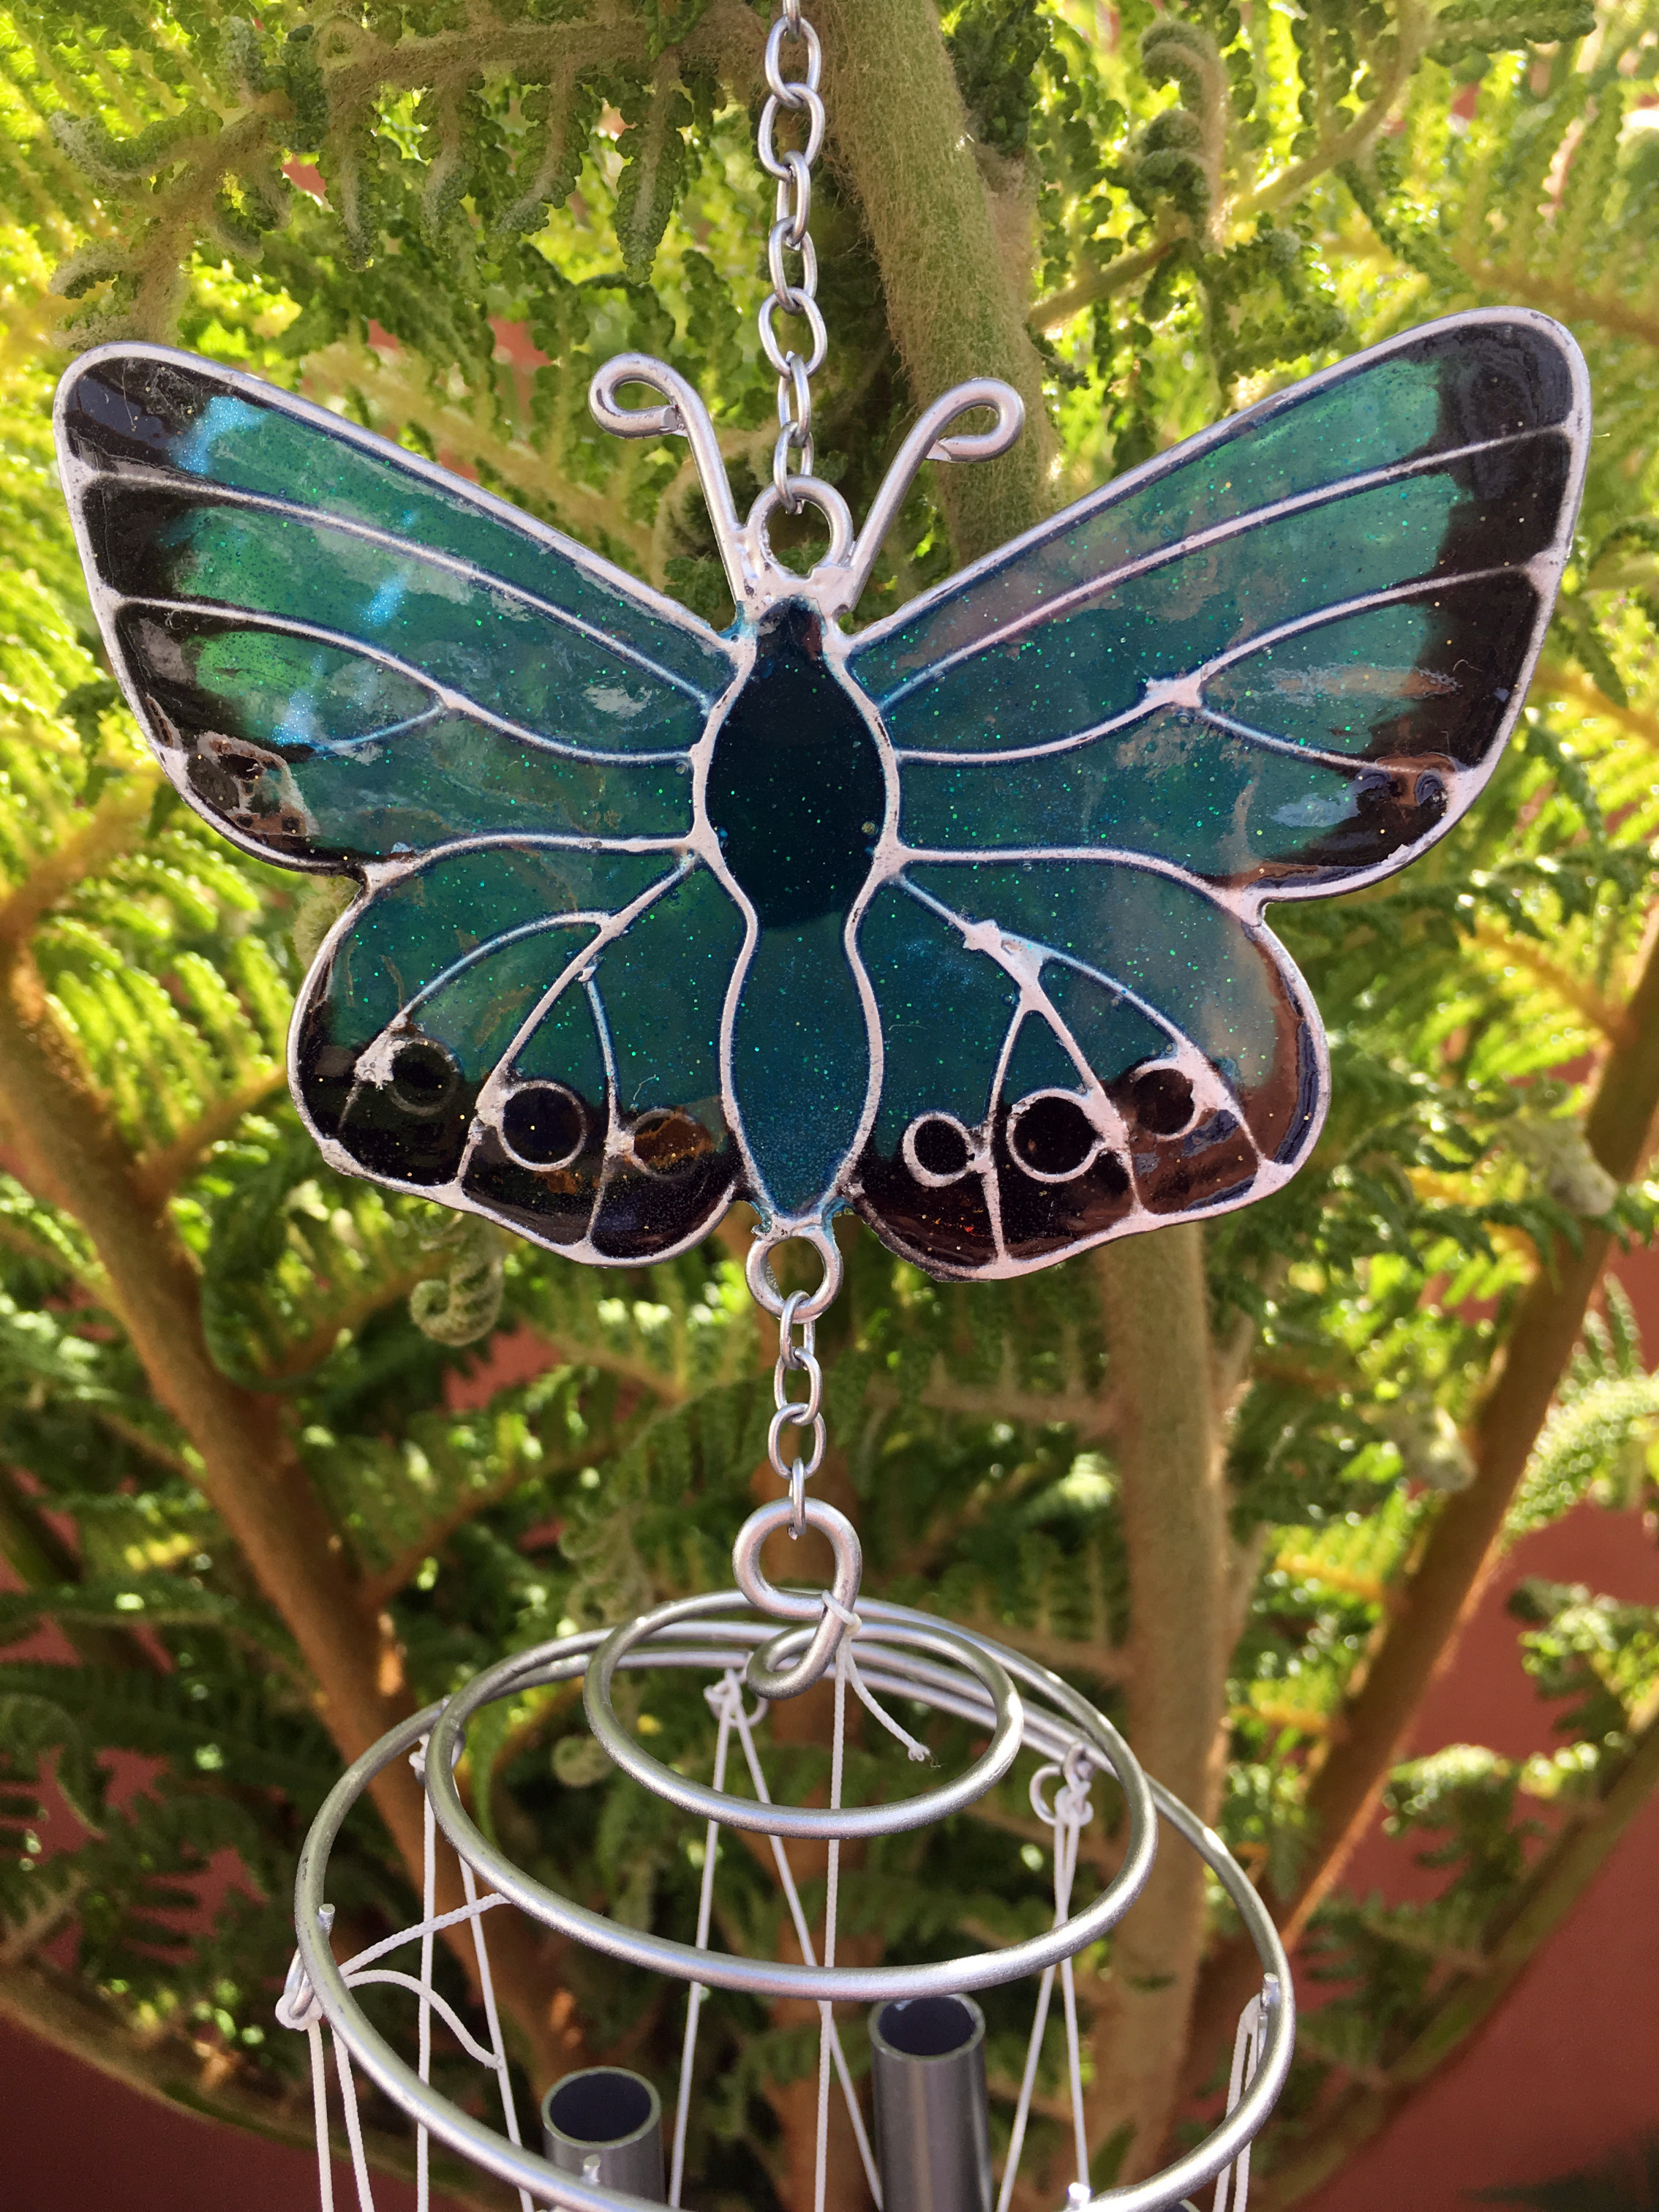 Large-Metal-amp-Glass-Hanging-Sun-Catcher-Wind-Chime-Home-Garden-Decorations thumbnail 17